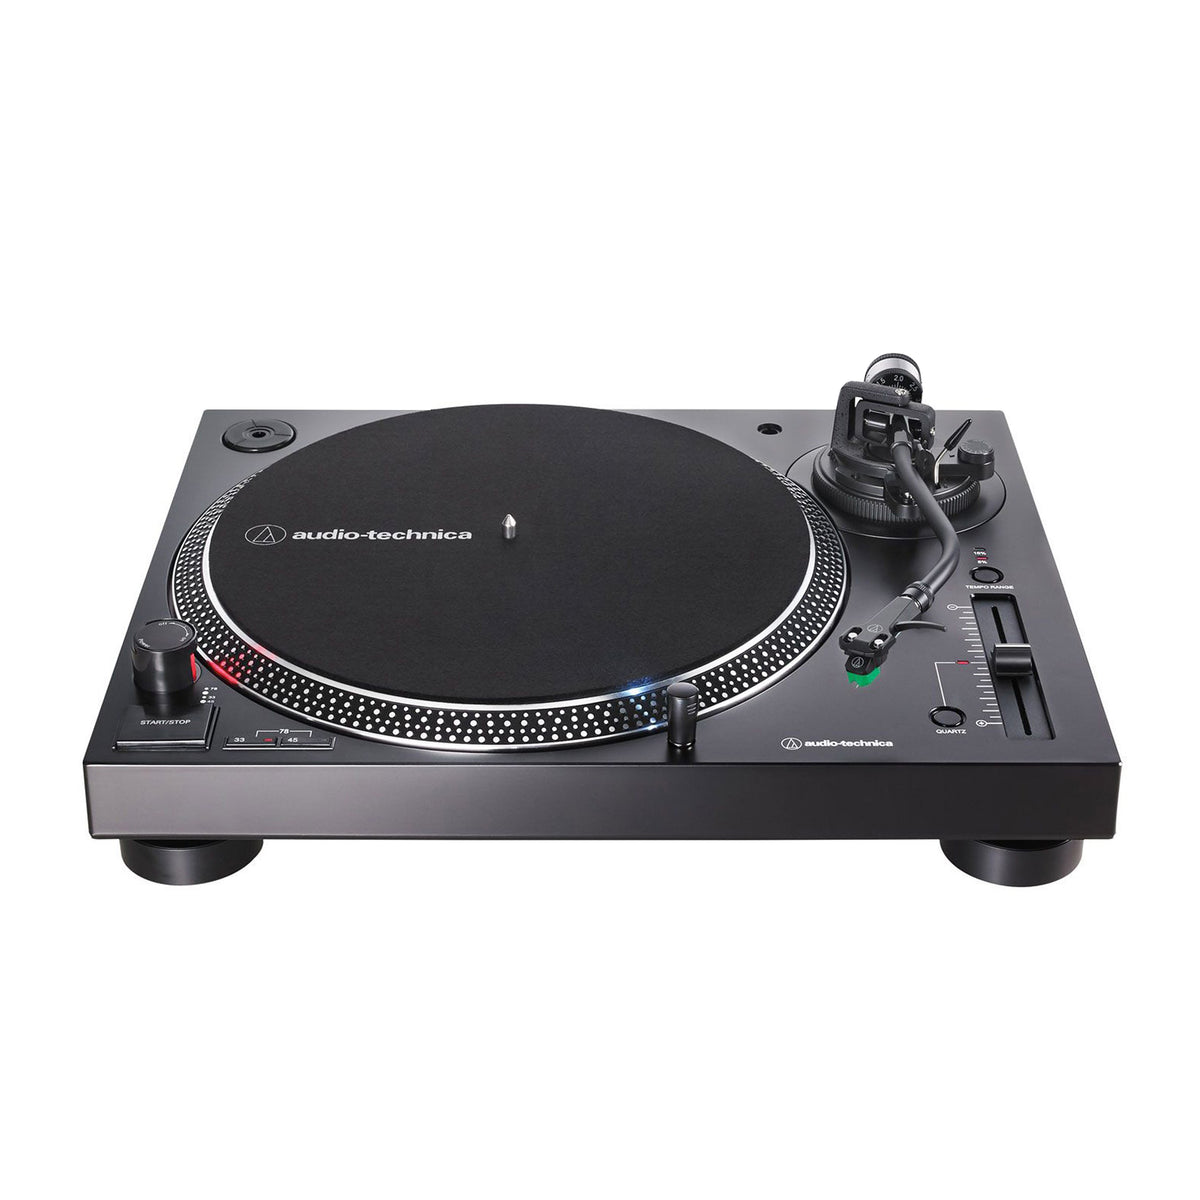 Audio Technica: AT-LP120XUSB-BK Direct Drive Turntable - Black